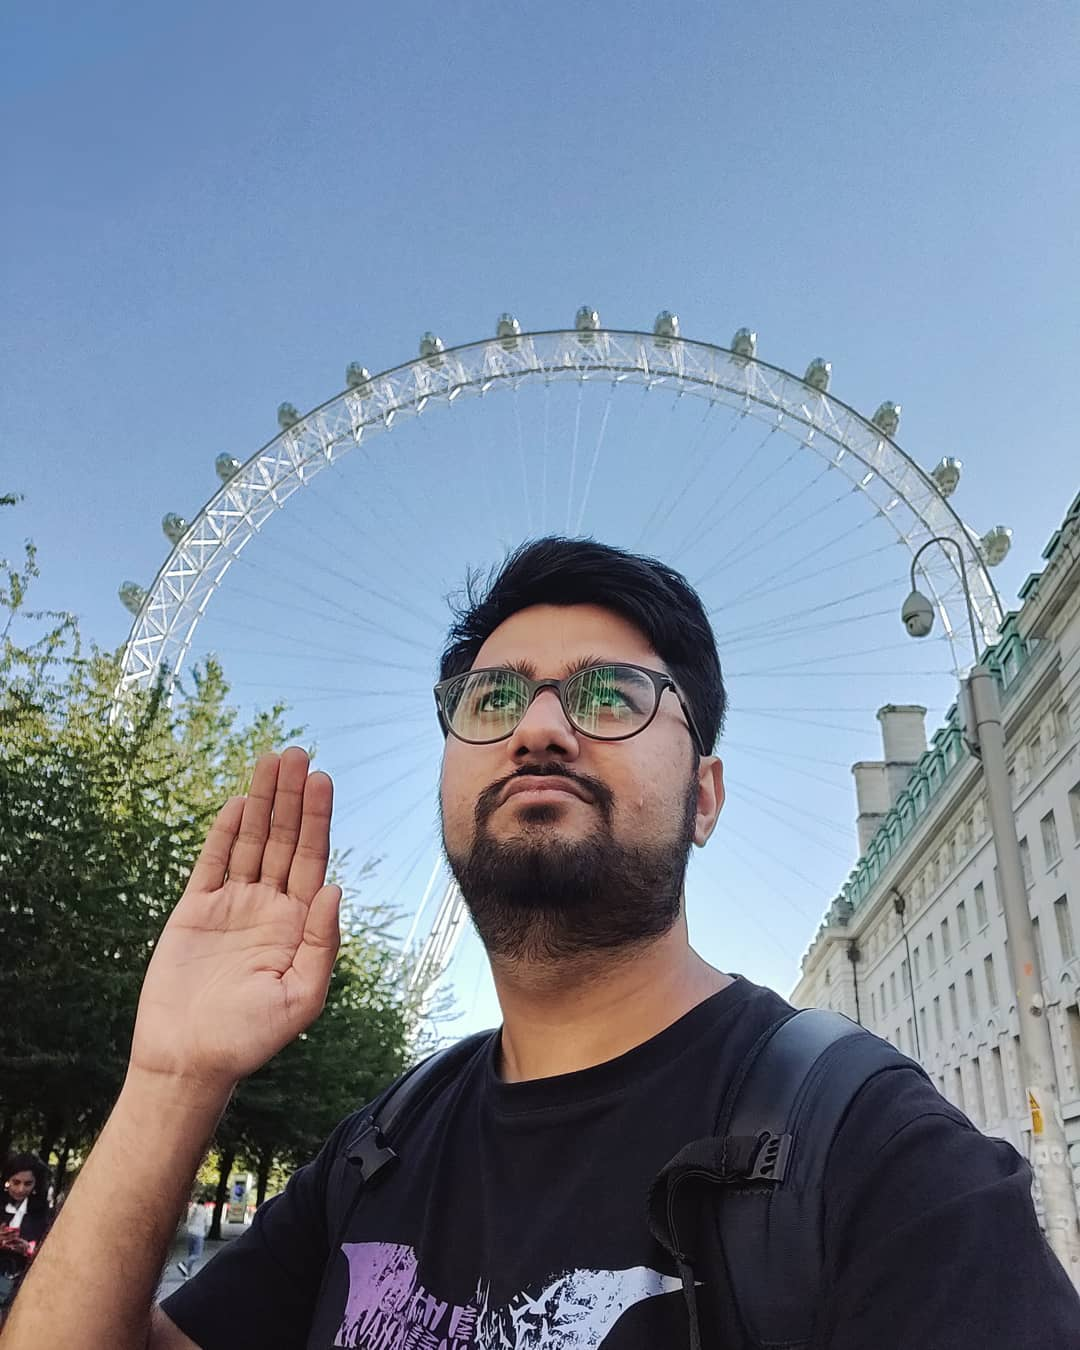 Aham Pakdaasmi  #travel #comic #london #comedian #travelgram #uk